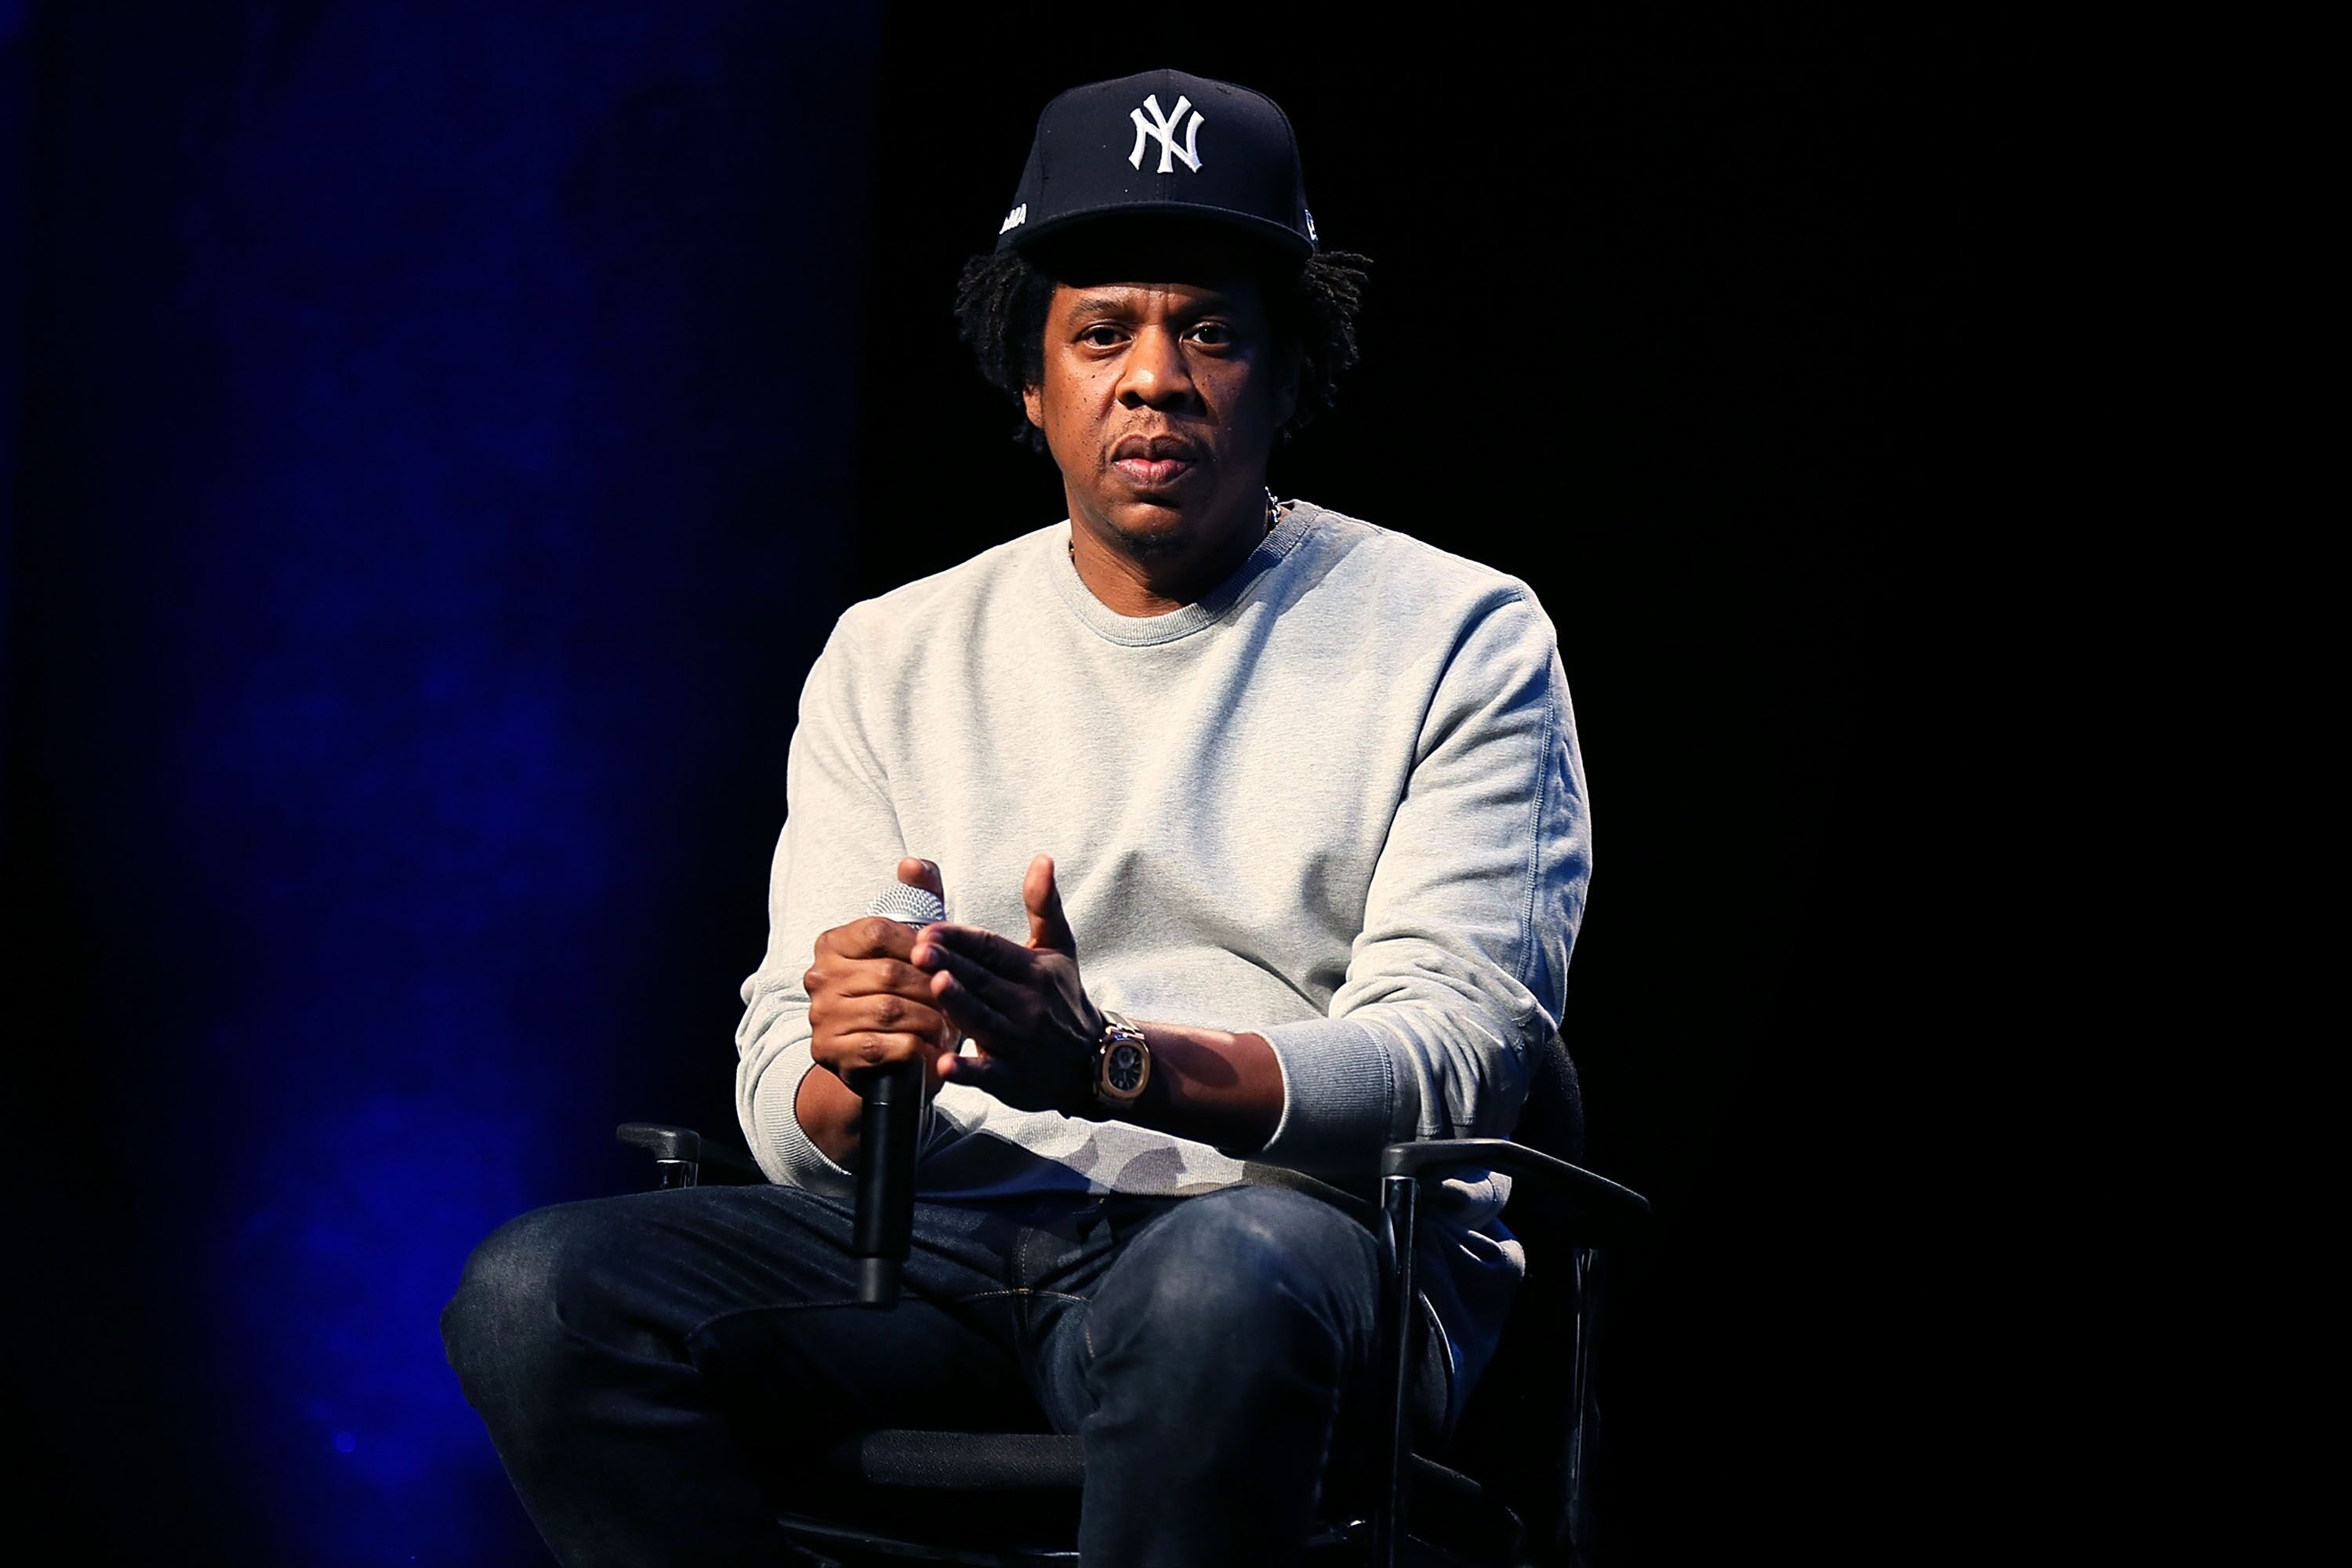 Jay-Z at a speaking engagement | Source: Getty Images/GlobalImagesUkraine